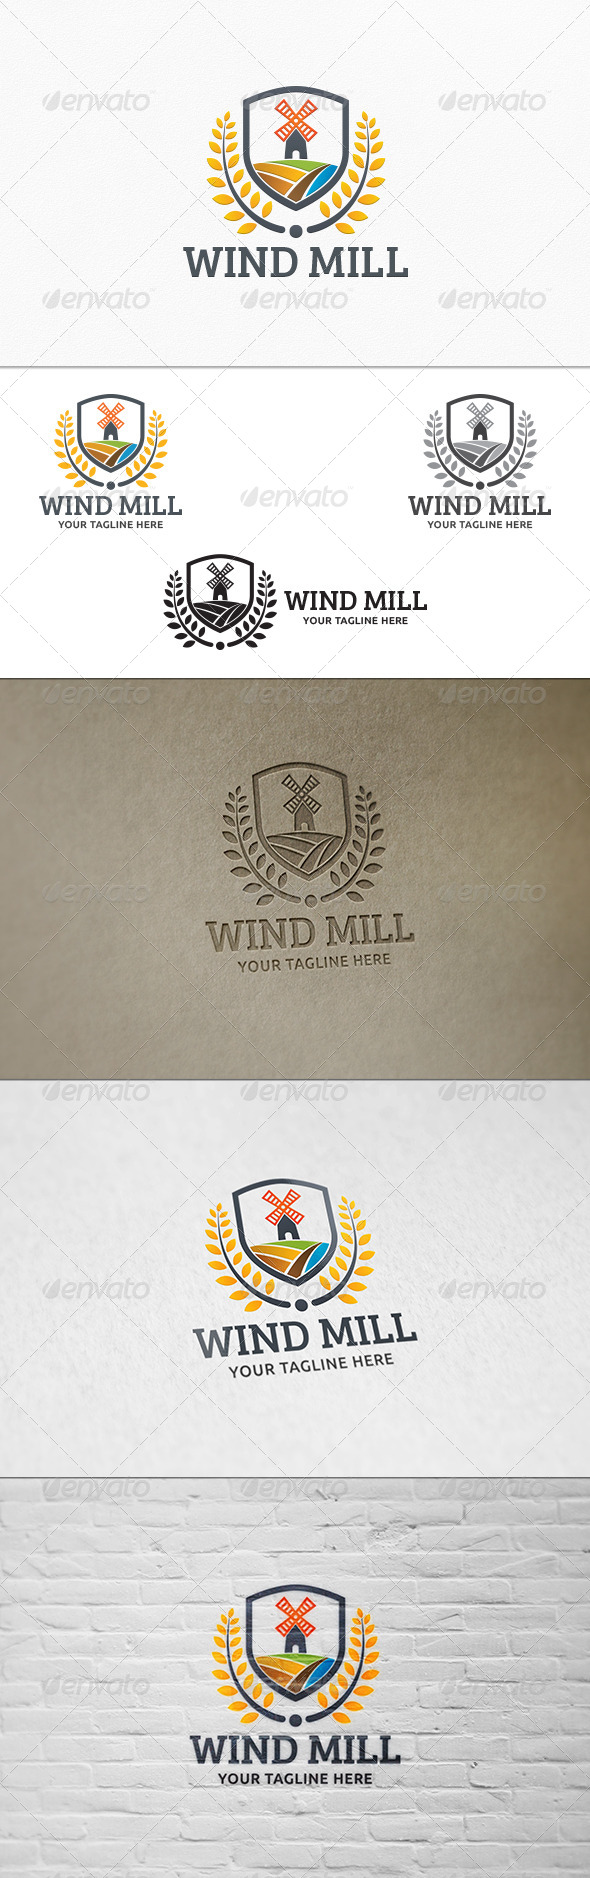 GraphicRiver Wind Mill Logo Template 8045853